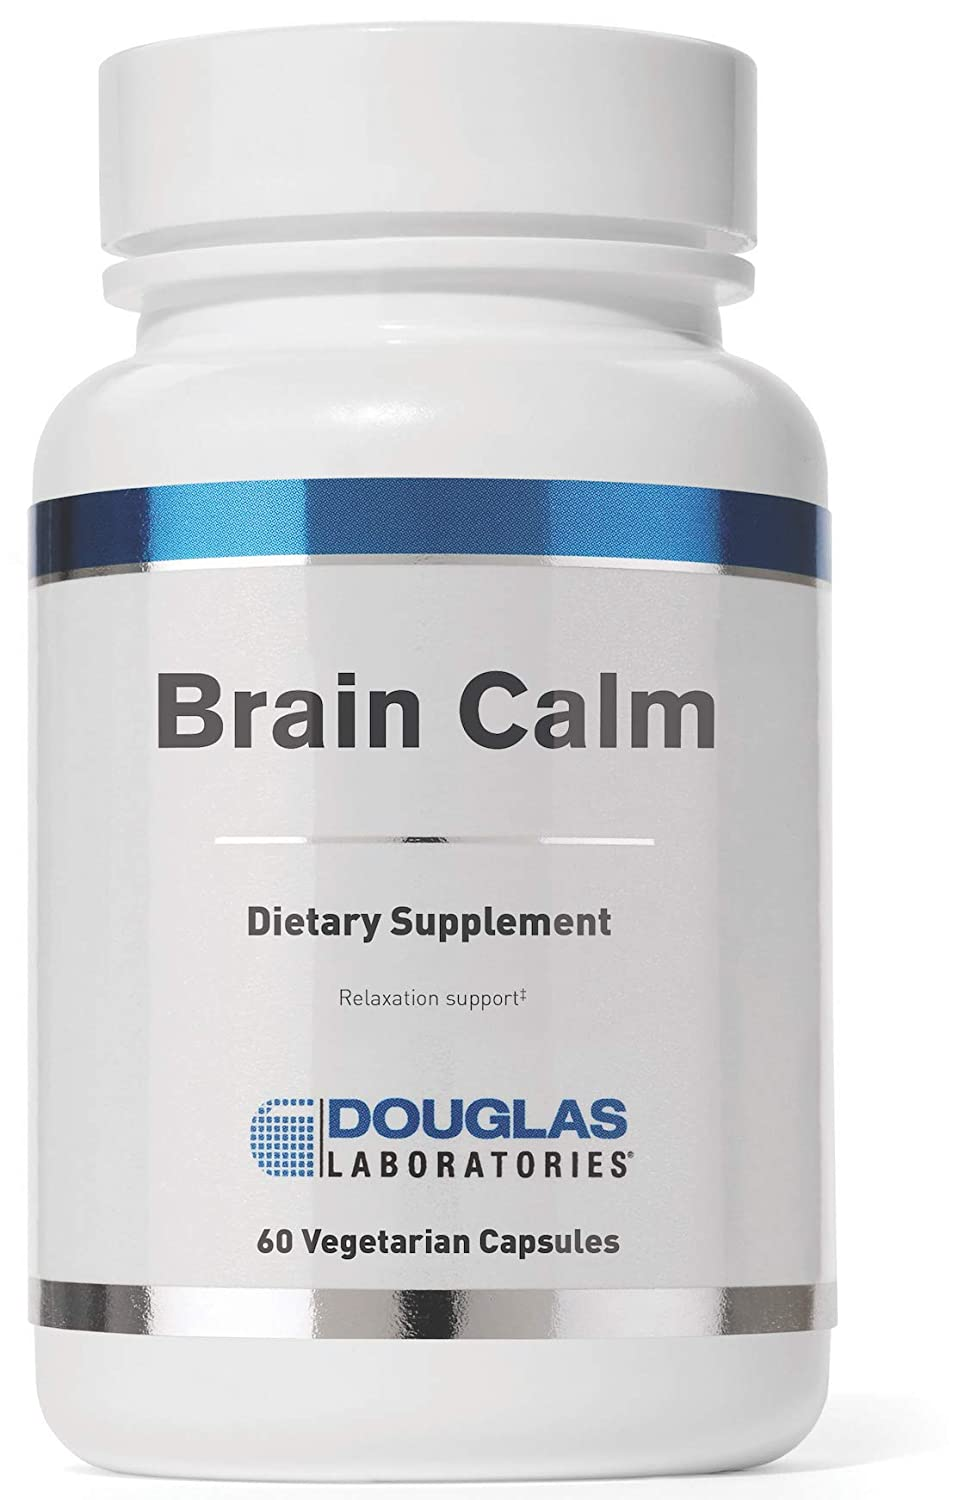 Douglas Laboratories – Brain Calm – Blend of Amino Acids and Nutrients to Promote A Calmer Brain* – 60 Capsules